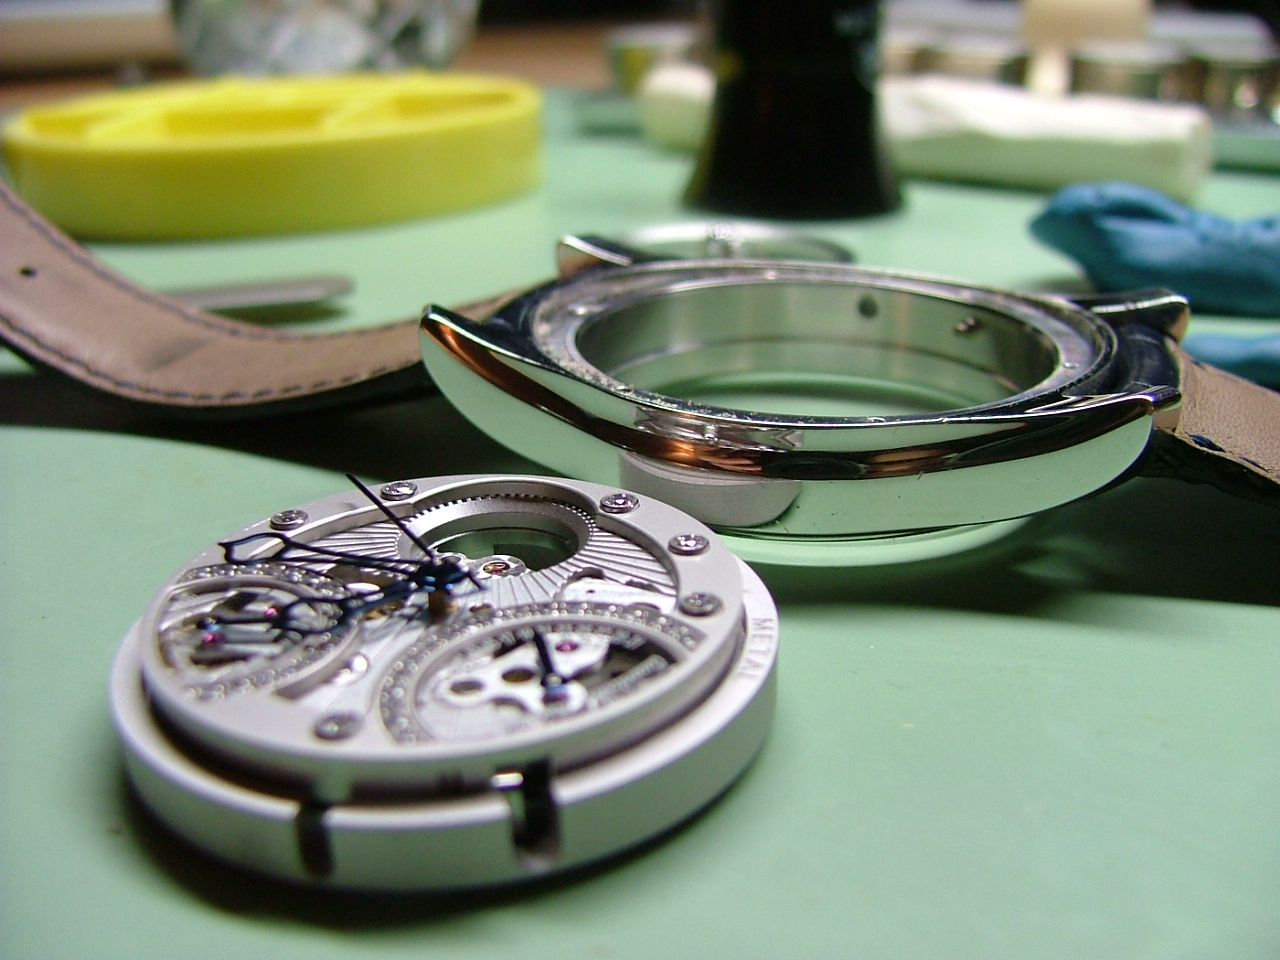 retrograde perpetual calendar watch repair